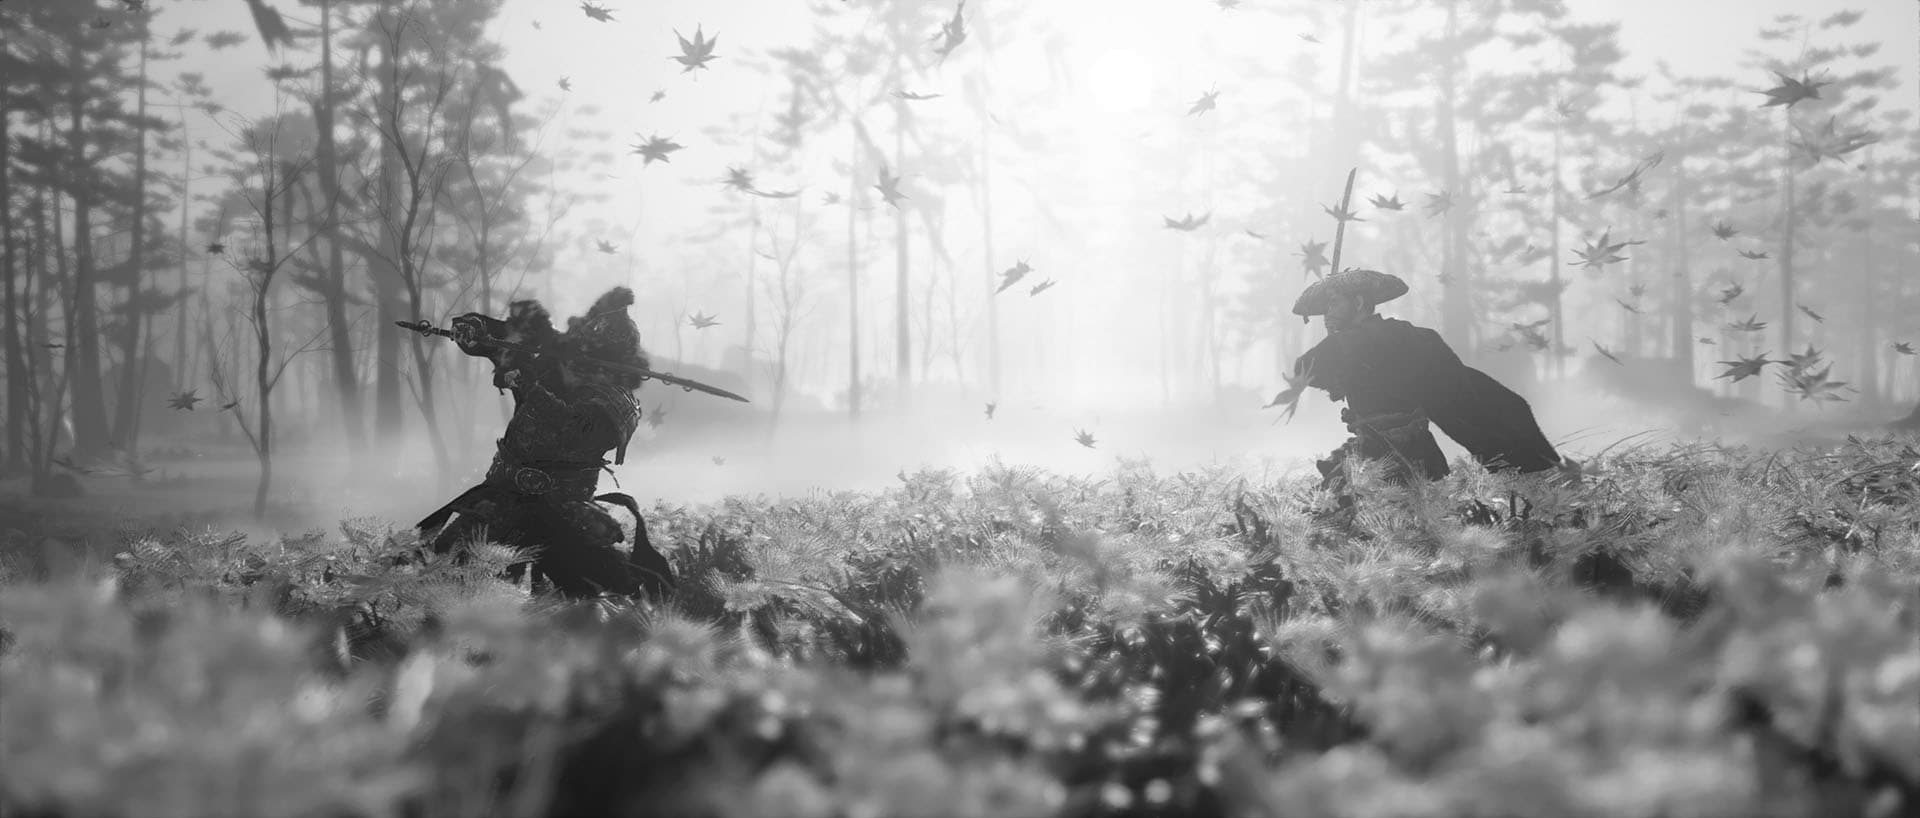 ghost_of_tsushima_review_combat_15947202